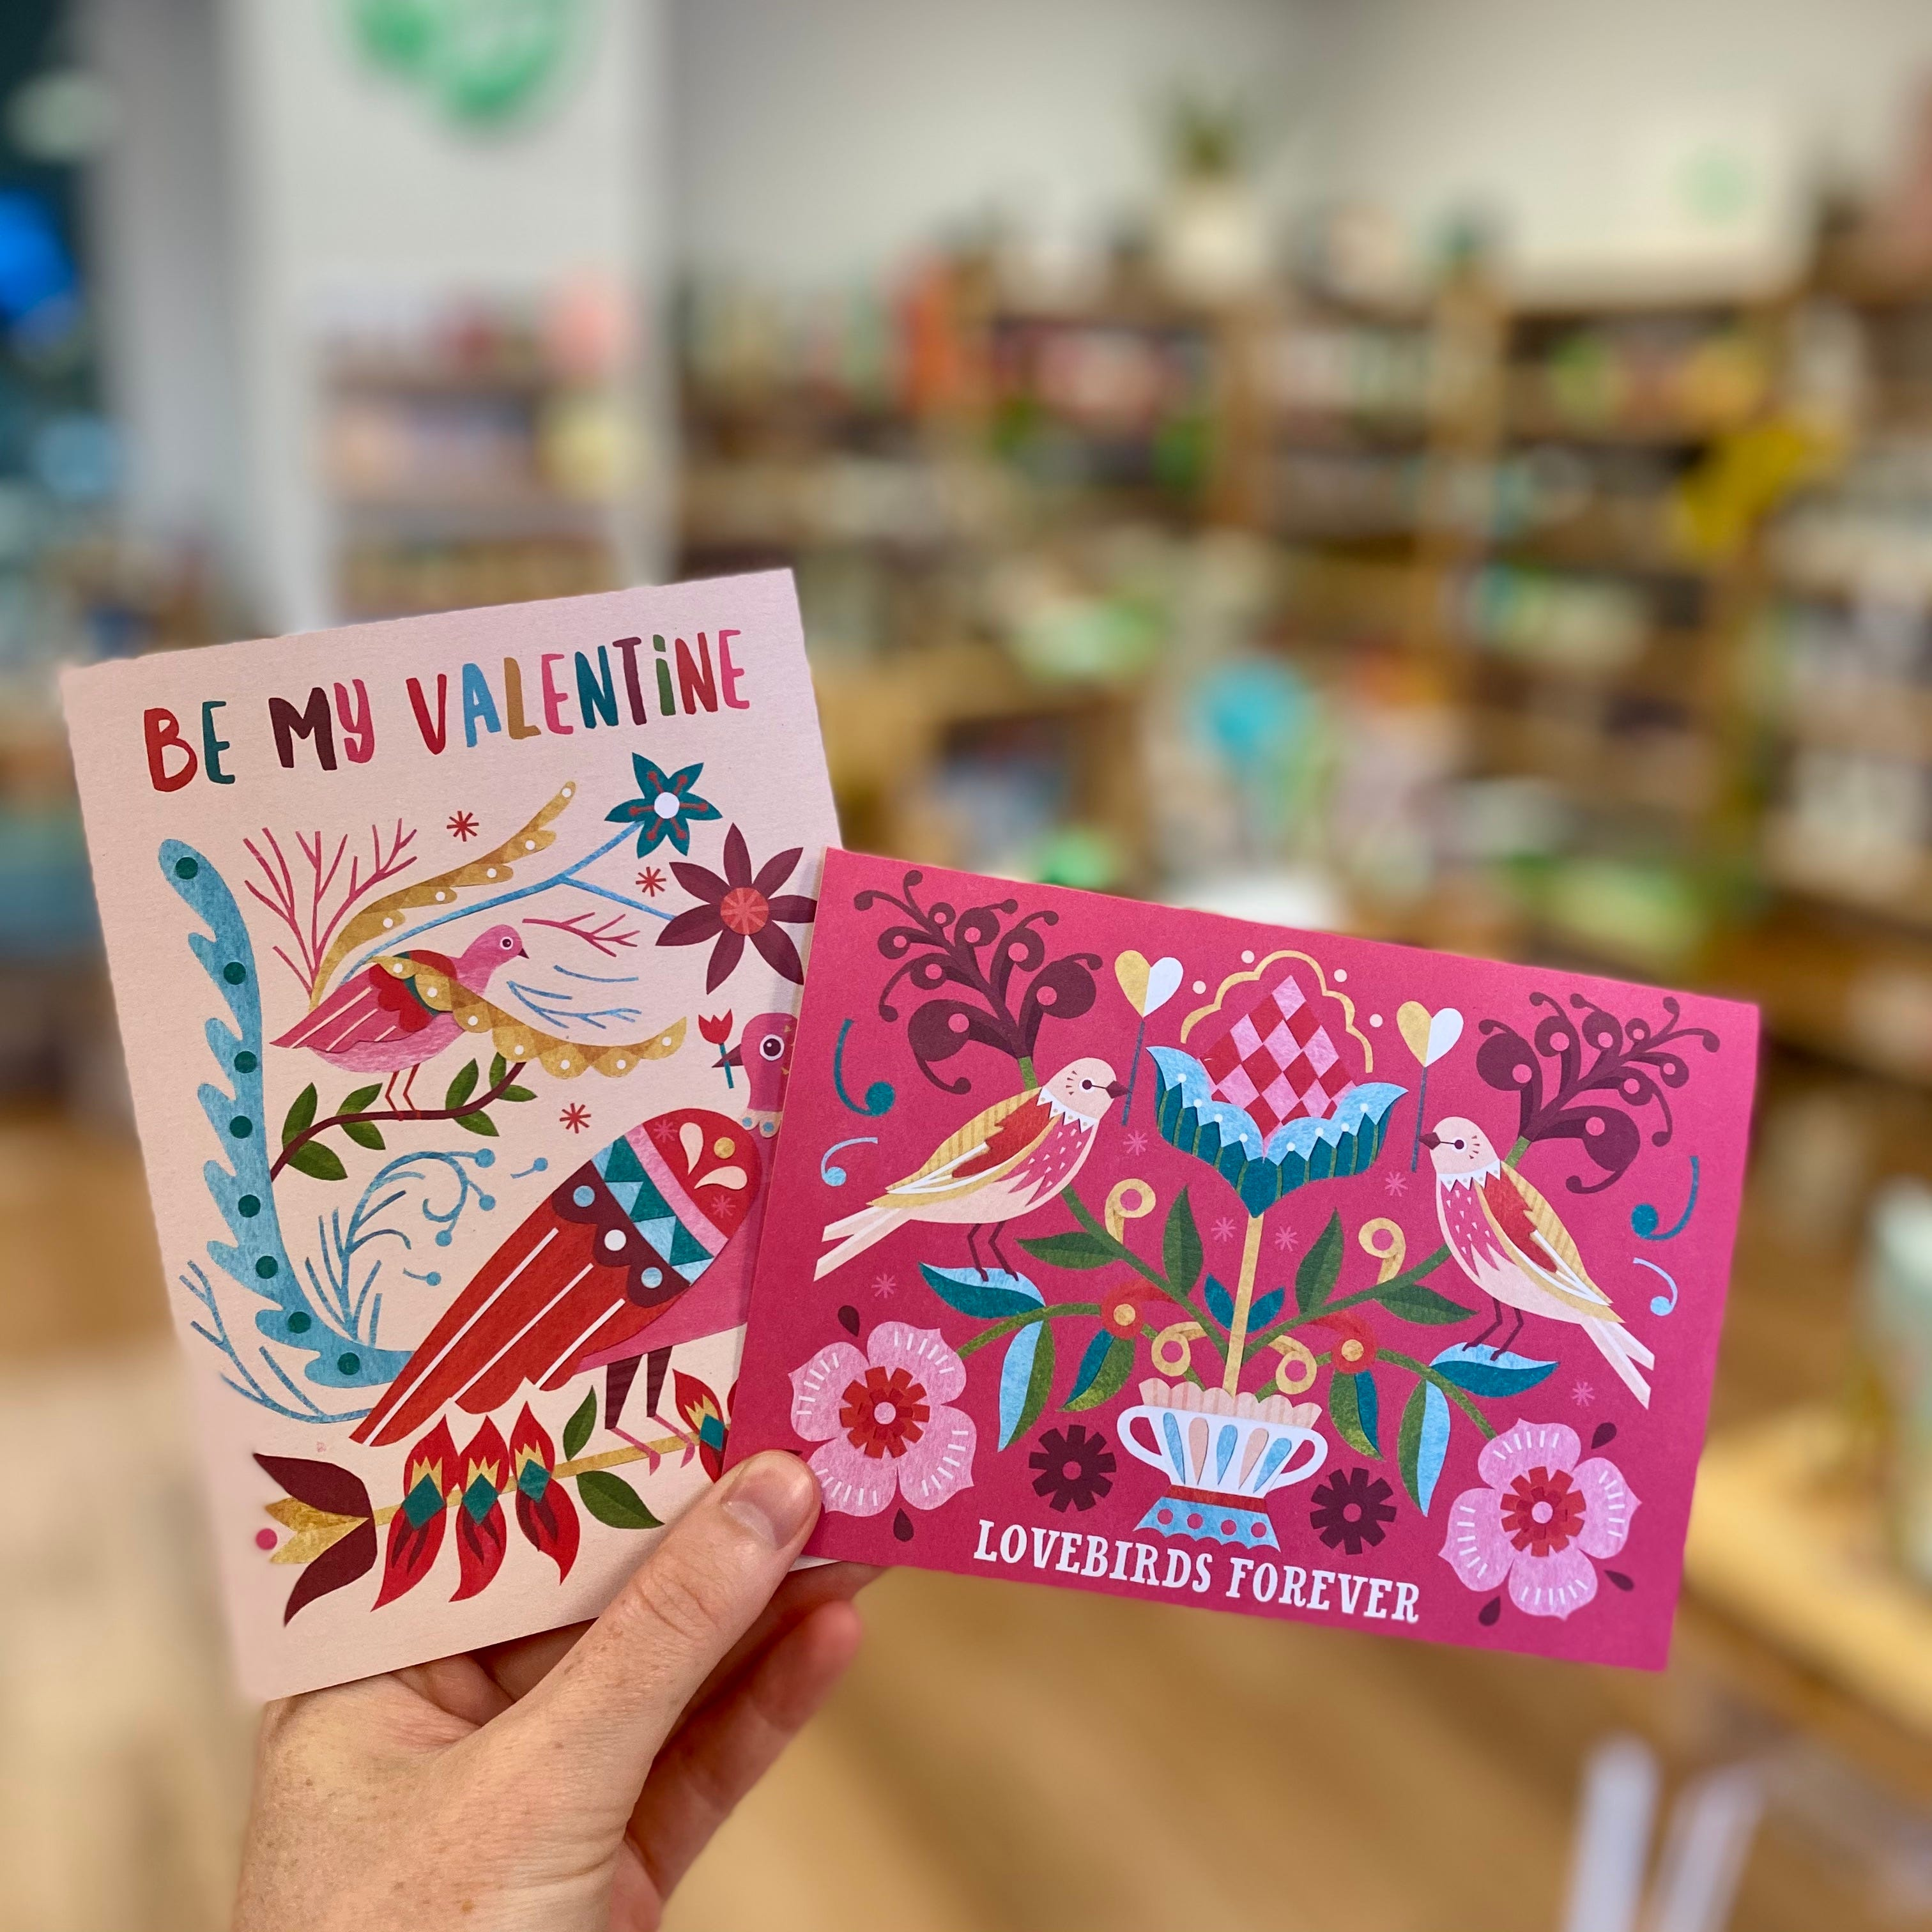 Earth Greetings Valentine's Day Cards